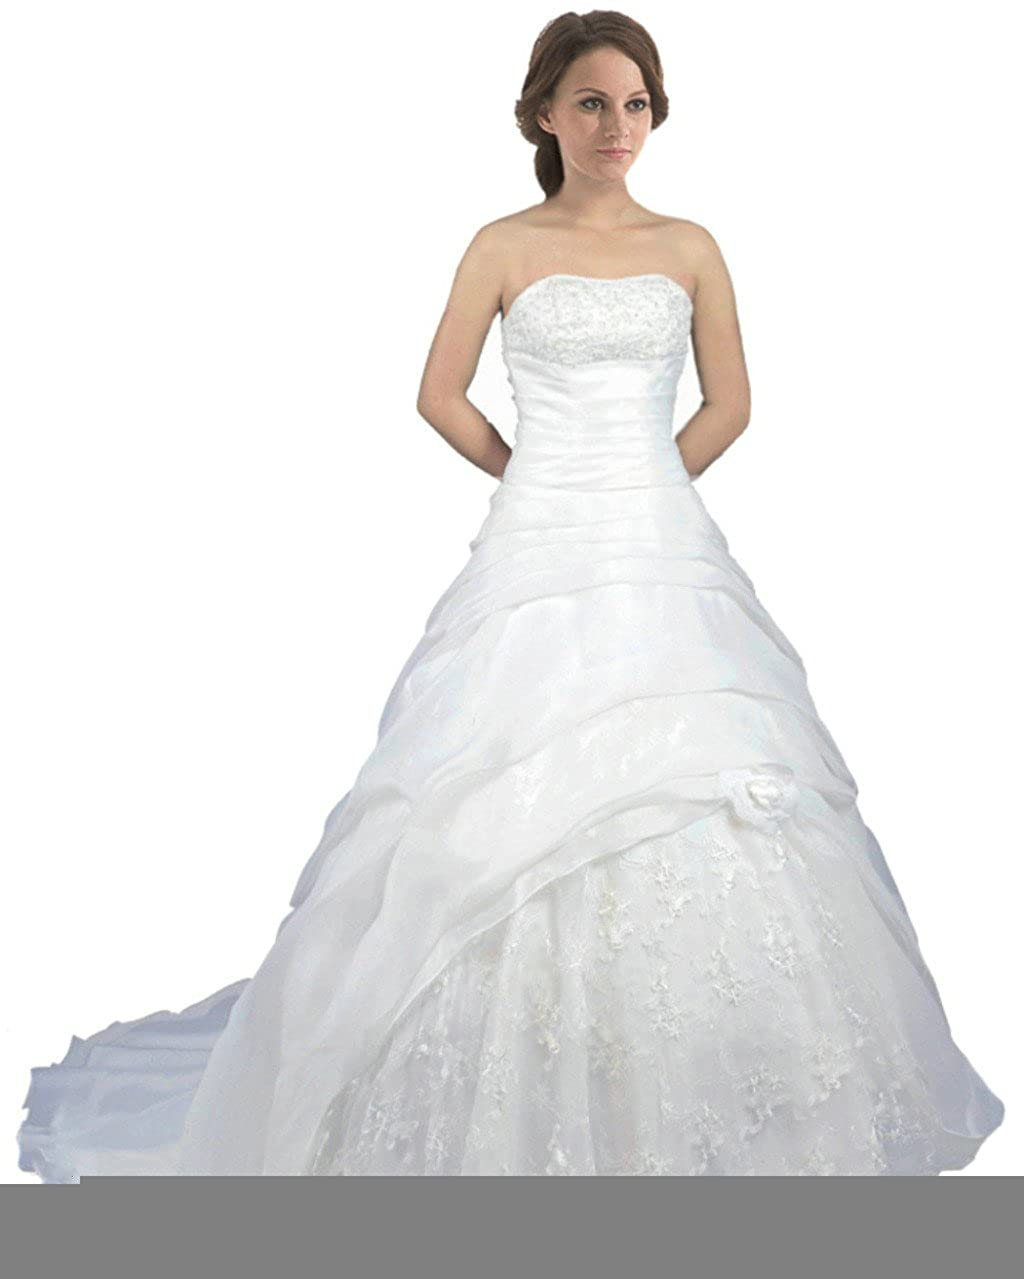 Ivory Vantexi Women's Strapless Pleated Organza Wedding Dress Bridal Gown